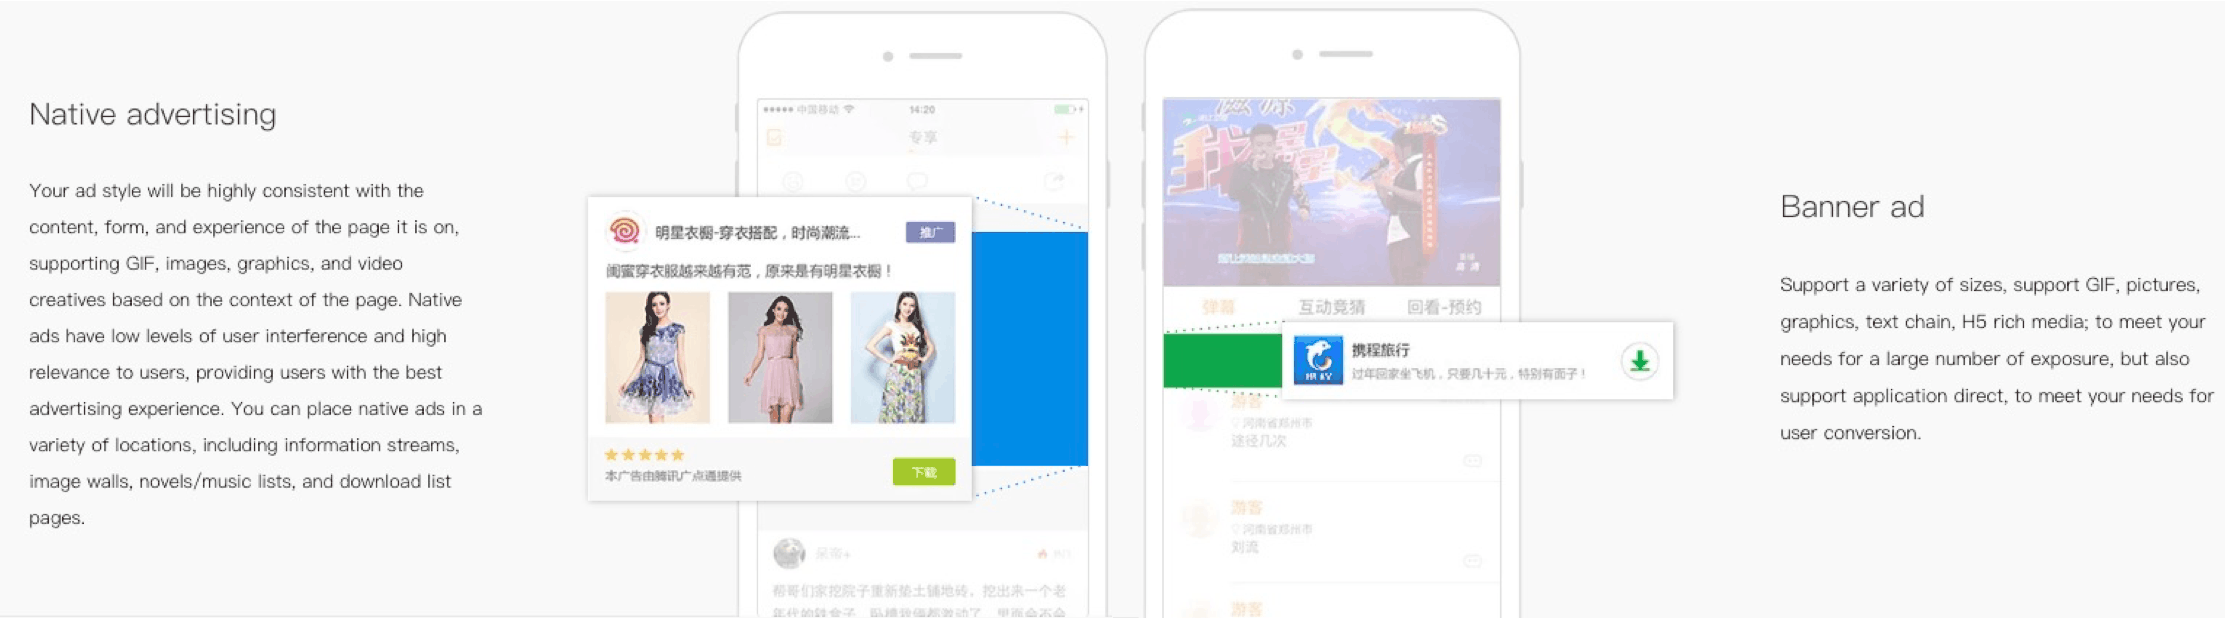 Examples of Ad formats on the Tencent Alliance Network - Dragon Social